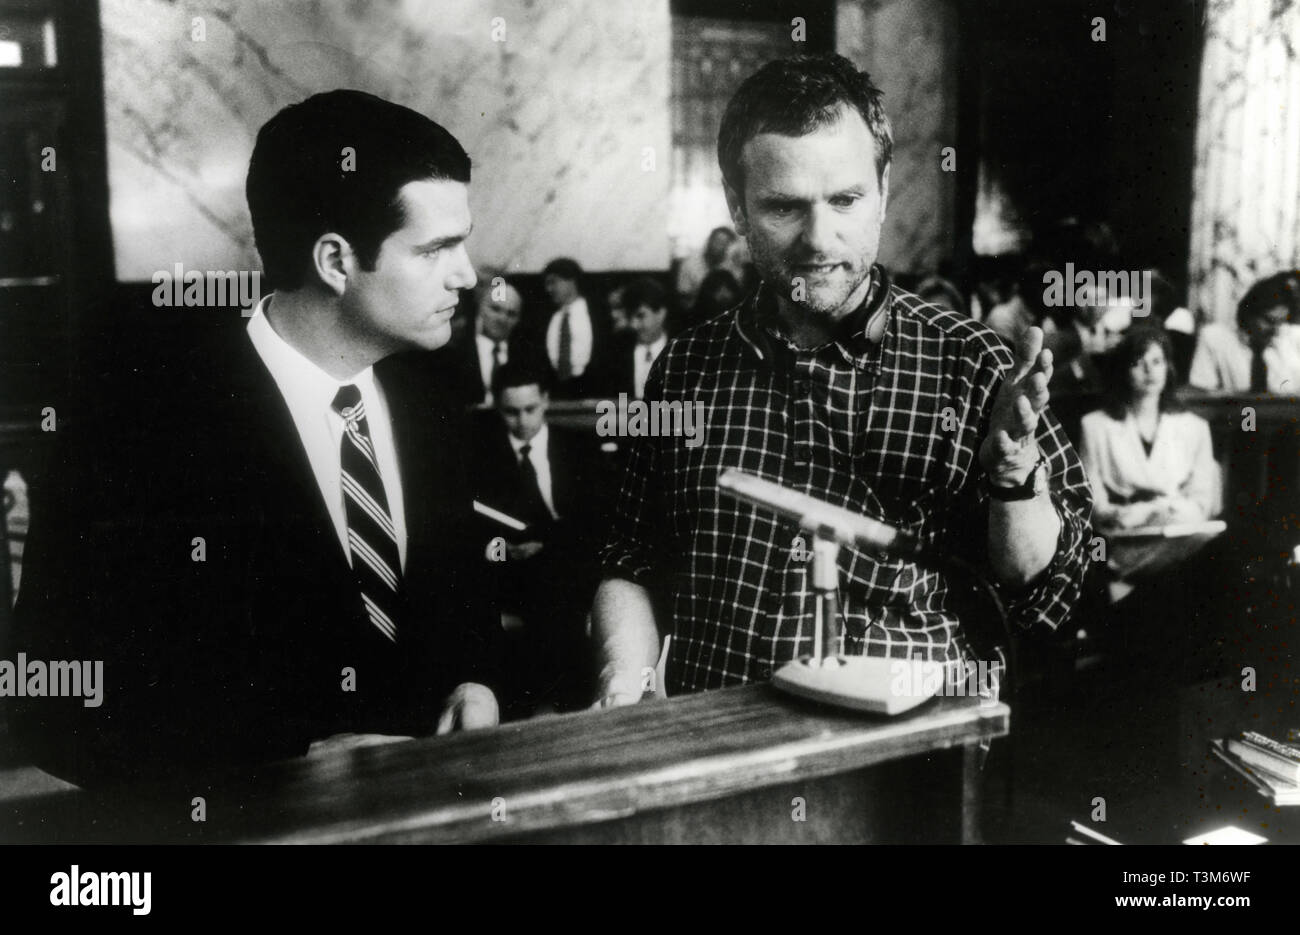 Movie director James Foley and Chris O'Donnell on the set of the movie The Chamber, 1996 - Stock Image